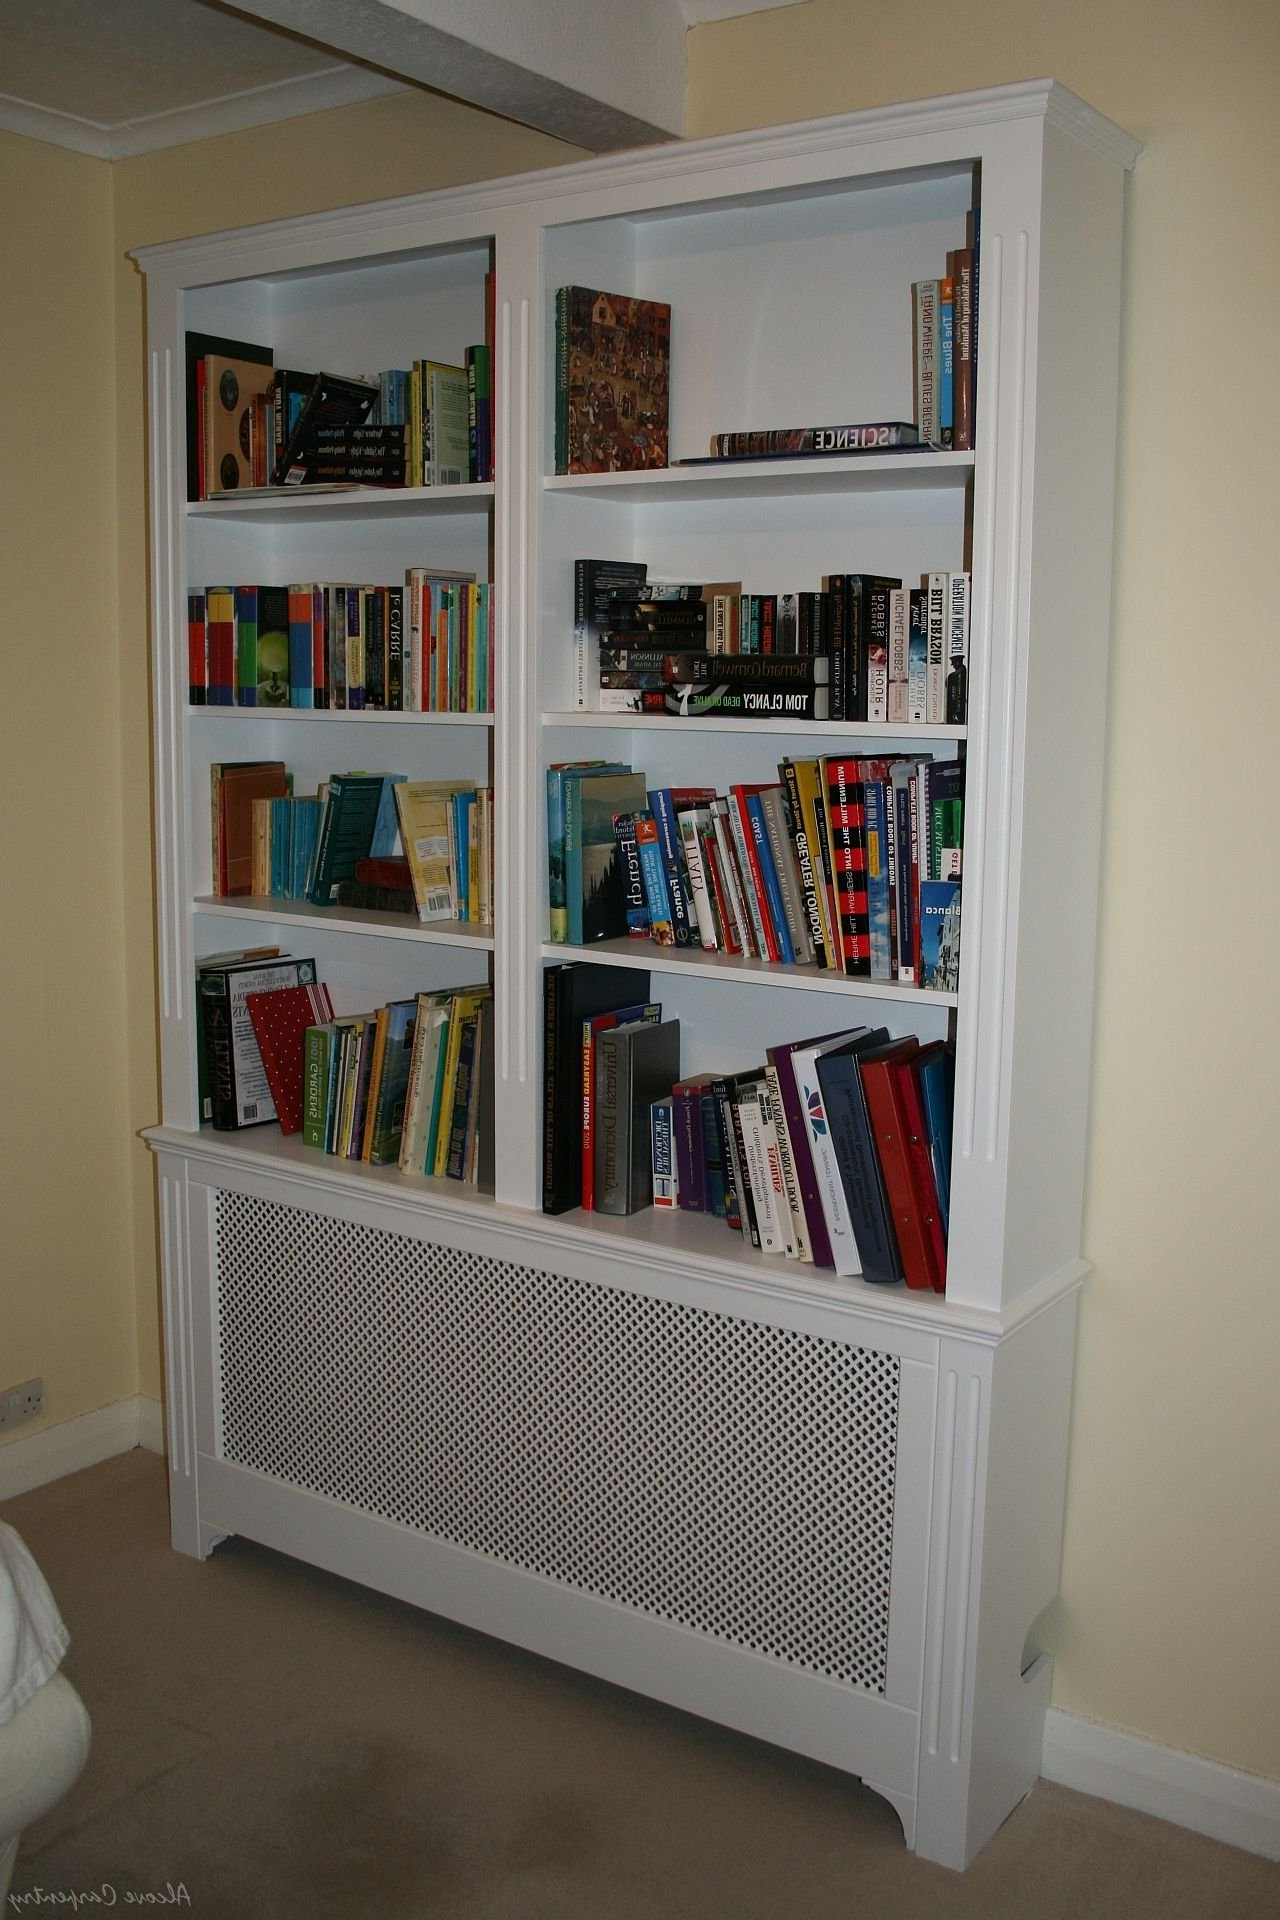 Radiator Cover Shelf Unit For Preferred 31 Model Radiator Bookcases Uk (View 4 of 15)